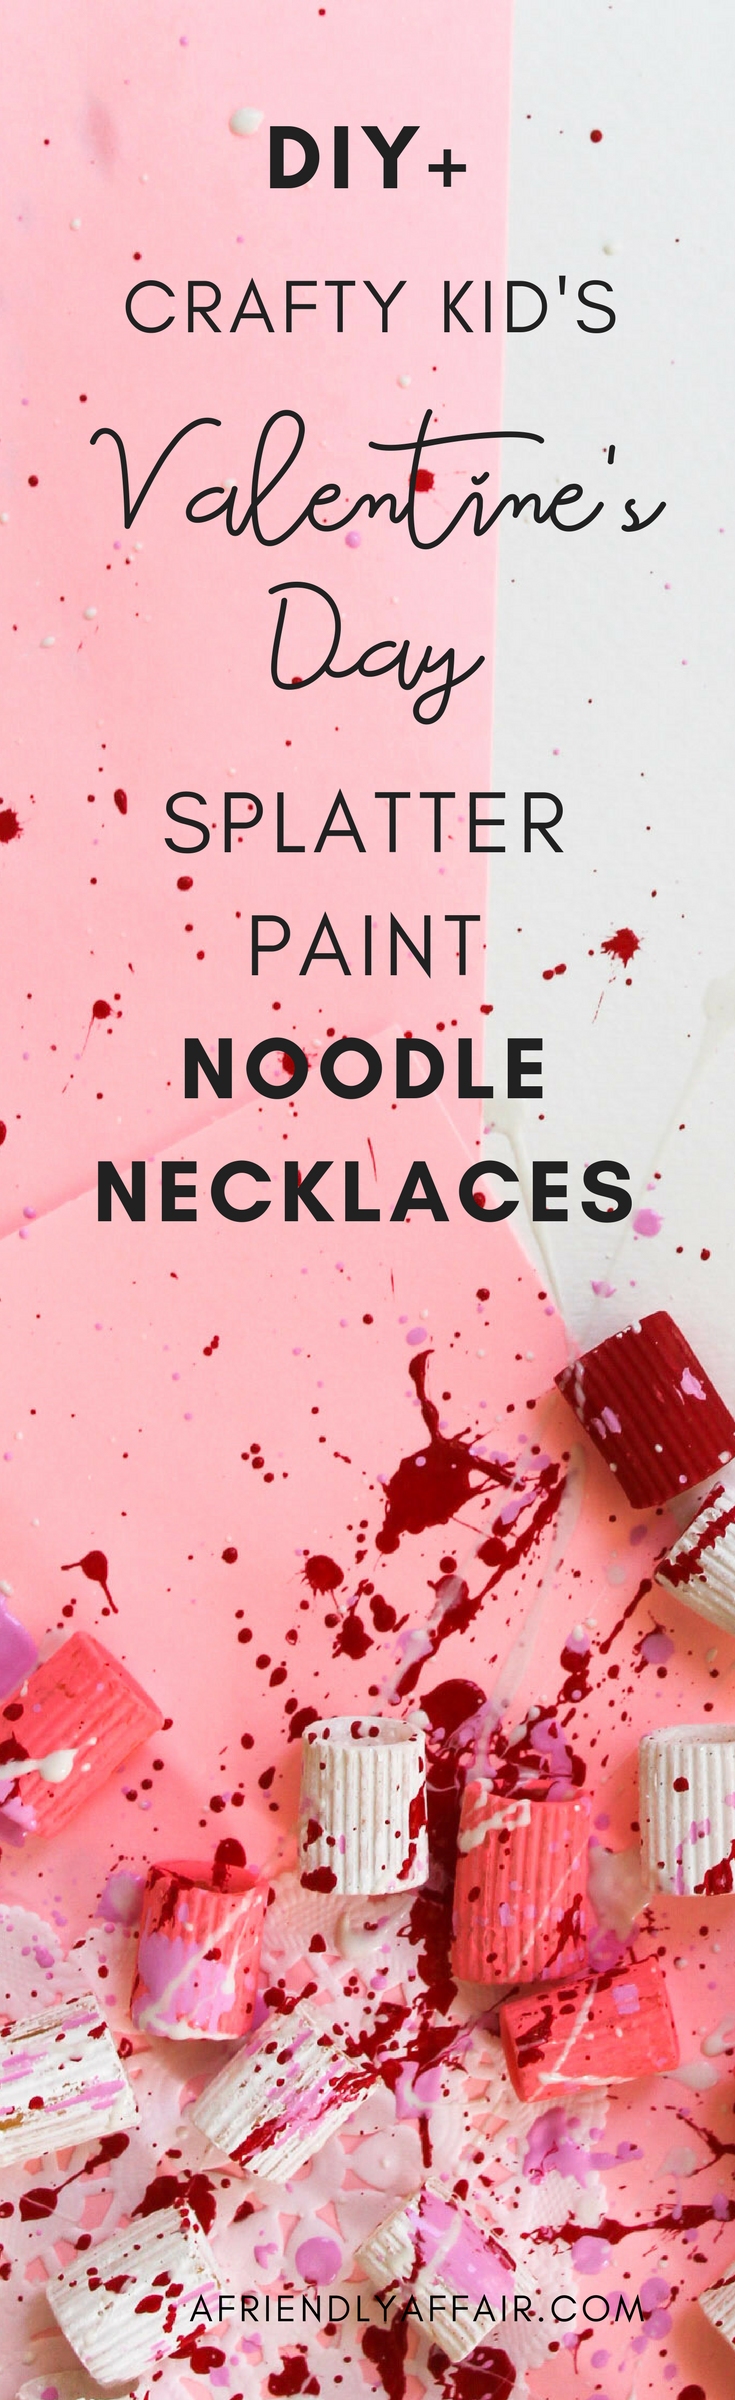 Copy of V-Day Noodle necklaces 5.png